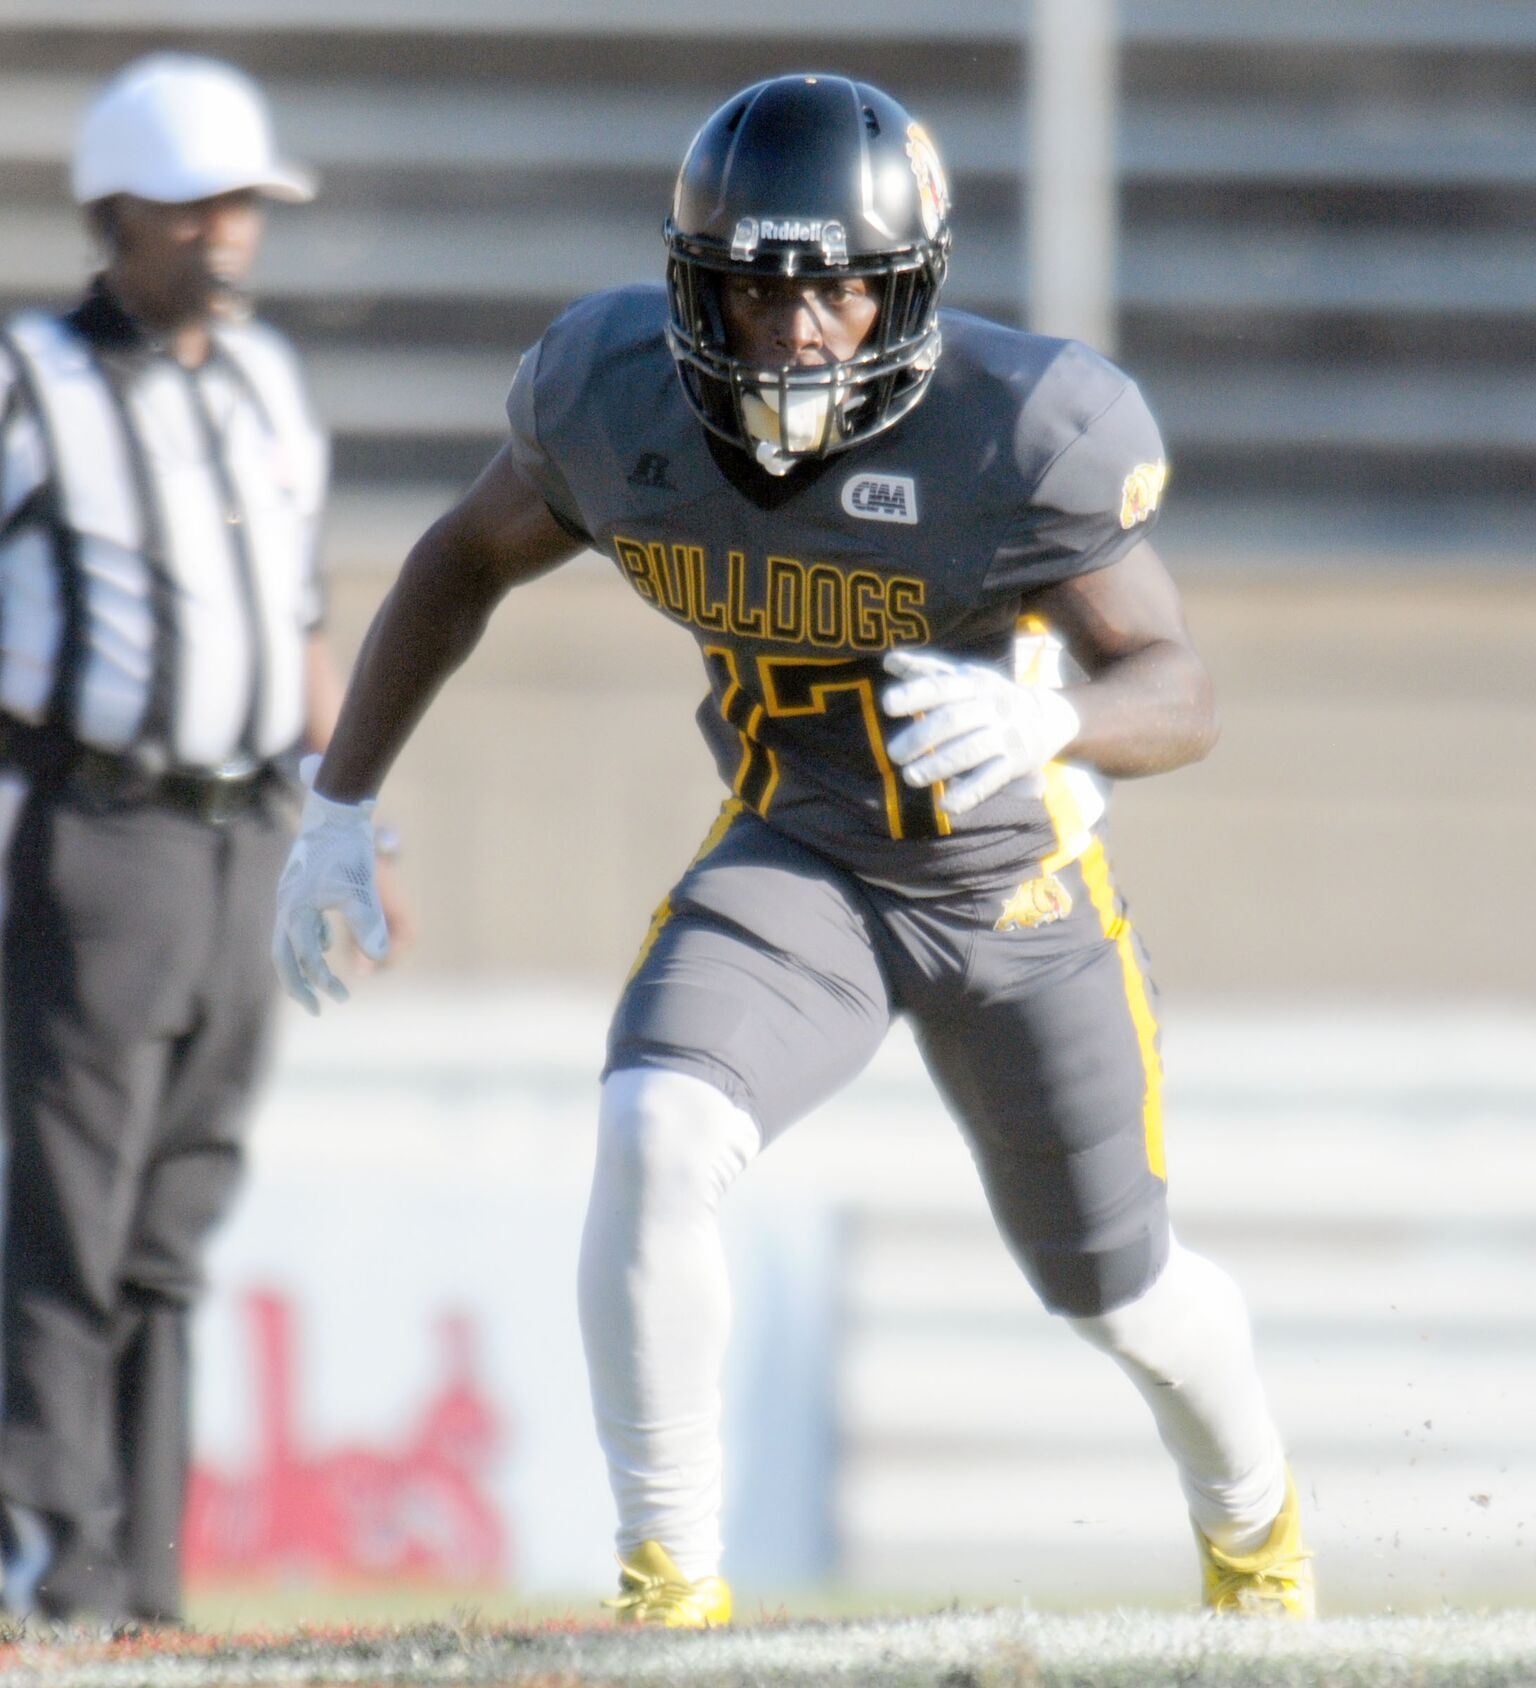 Bowie State Bulldogs Thump Saint Augustine S Falcons 66 20 Bowie